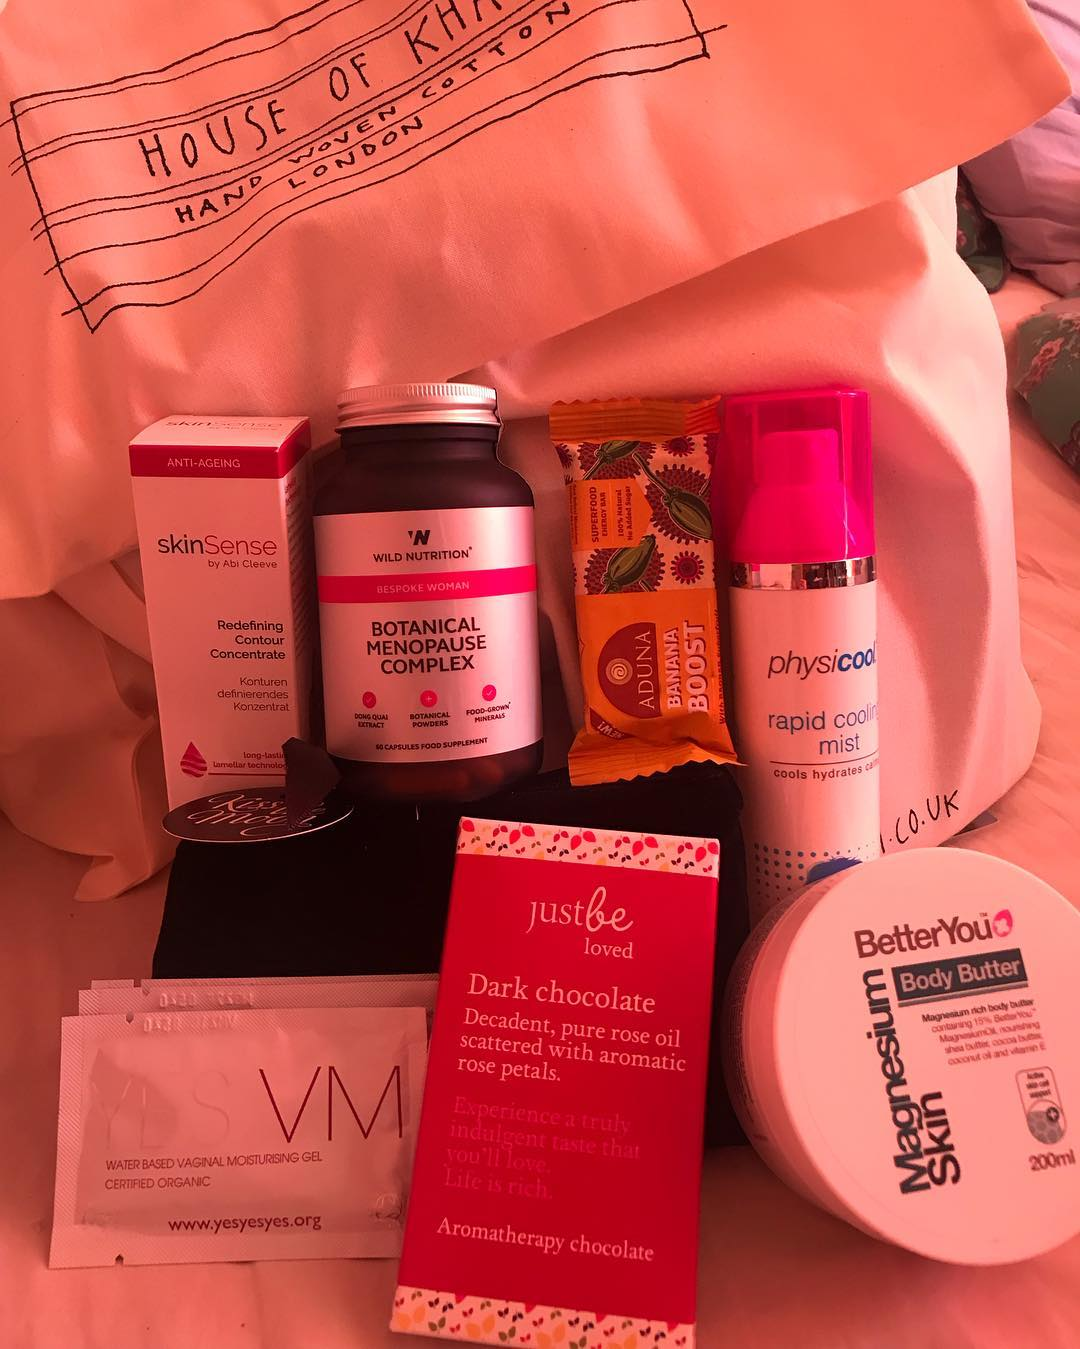 Menoheaven goodie bag Oct 2018.jpg